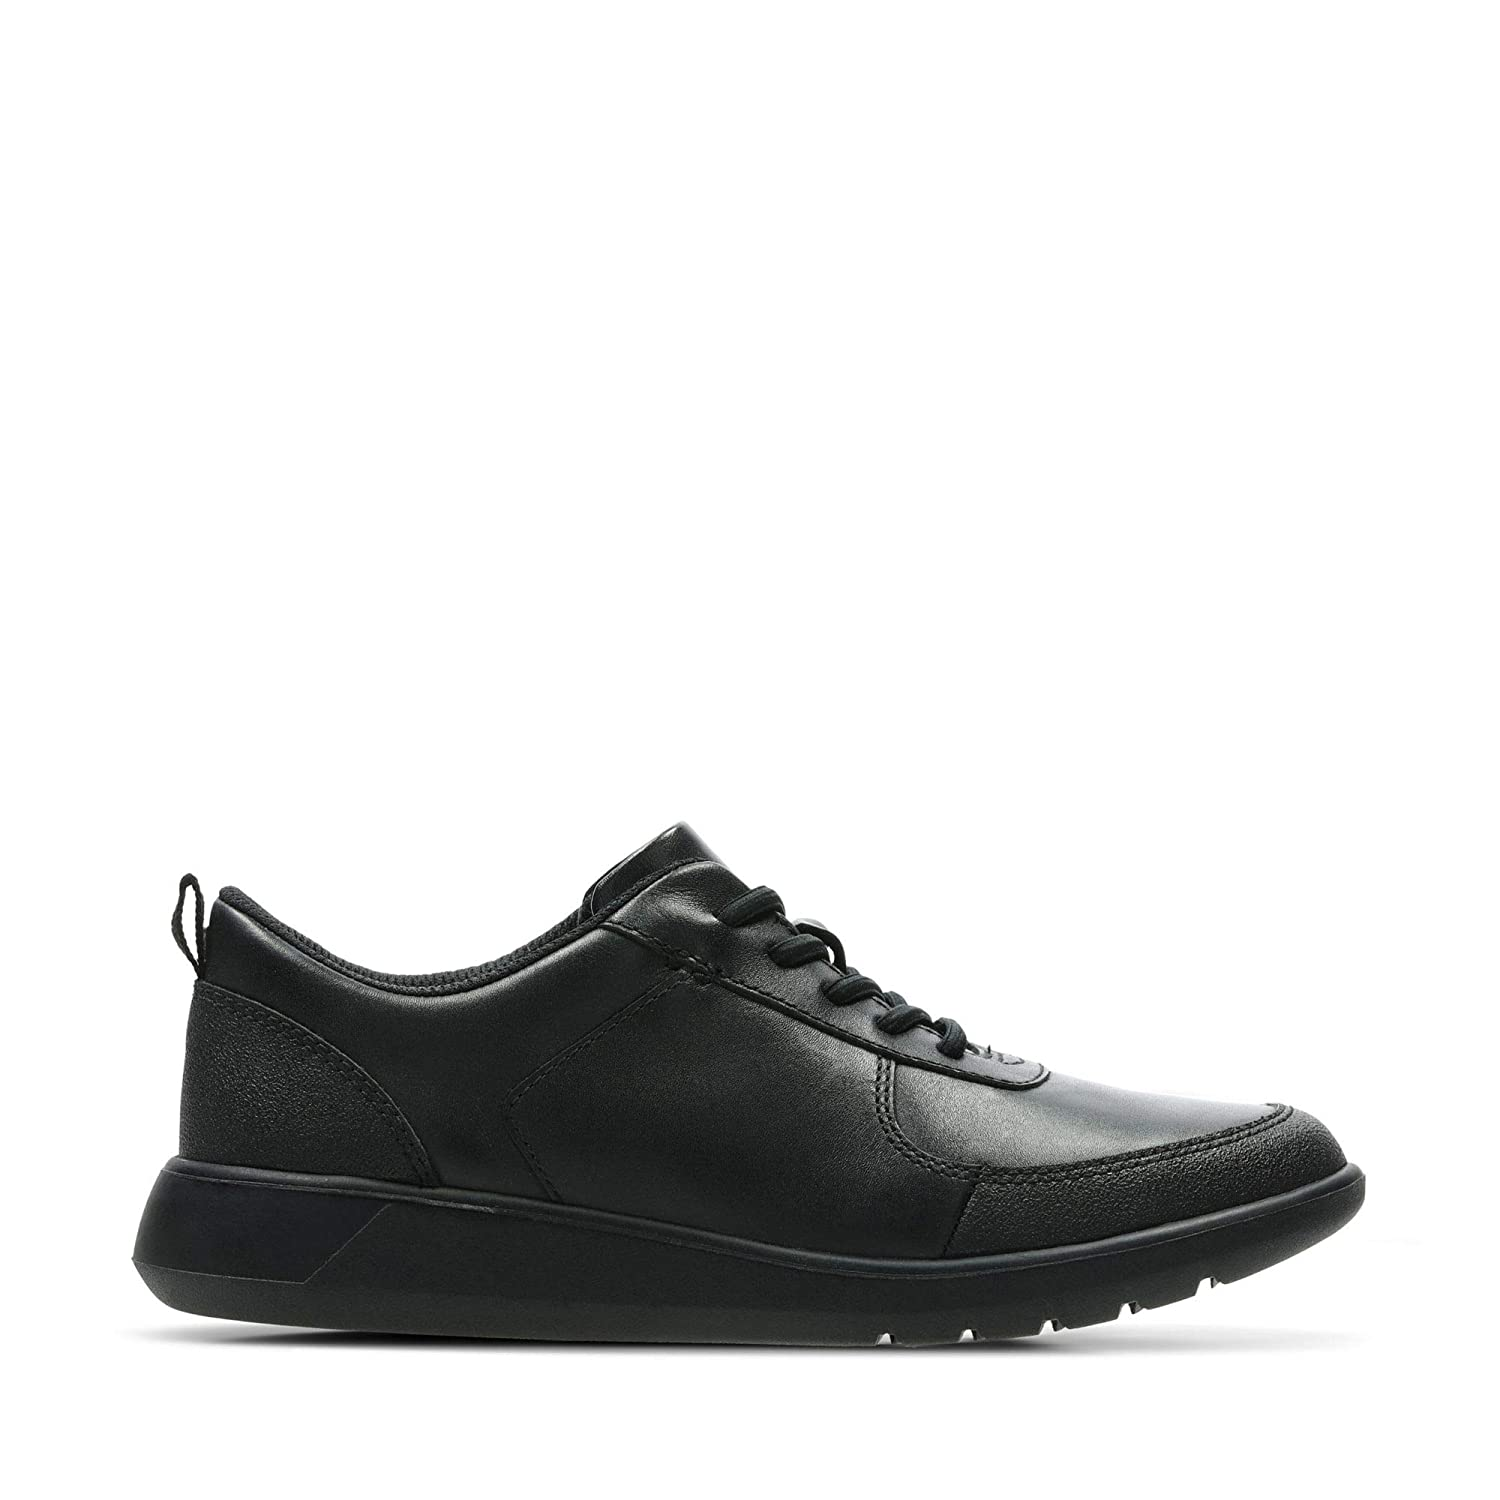 Clarks Scape Street Youth Leather Shoes in Black